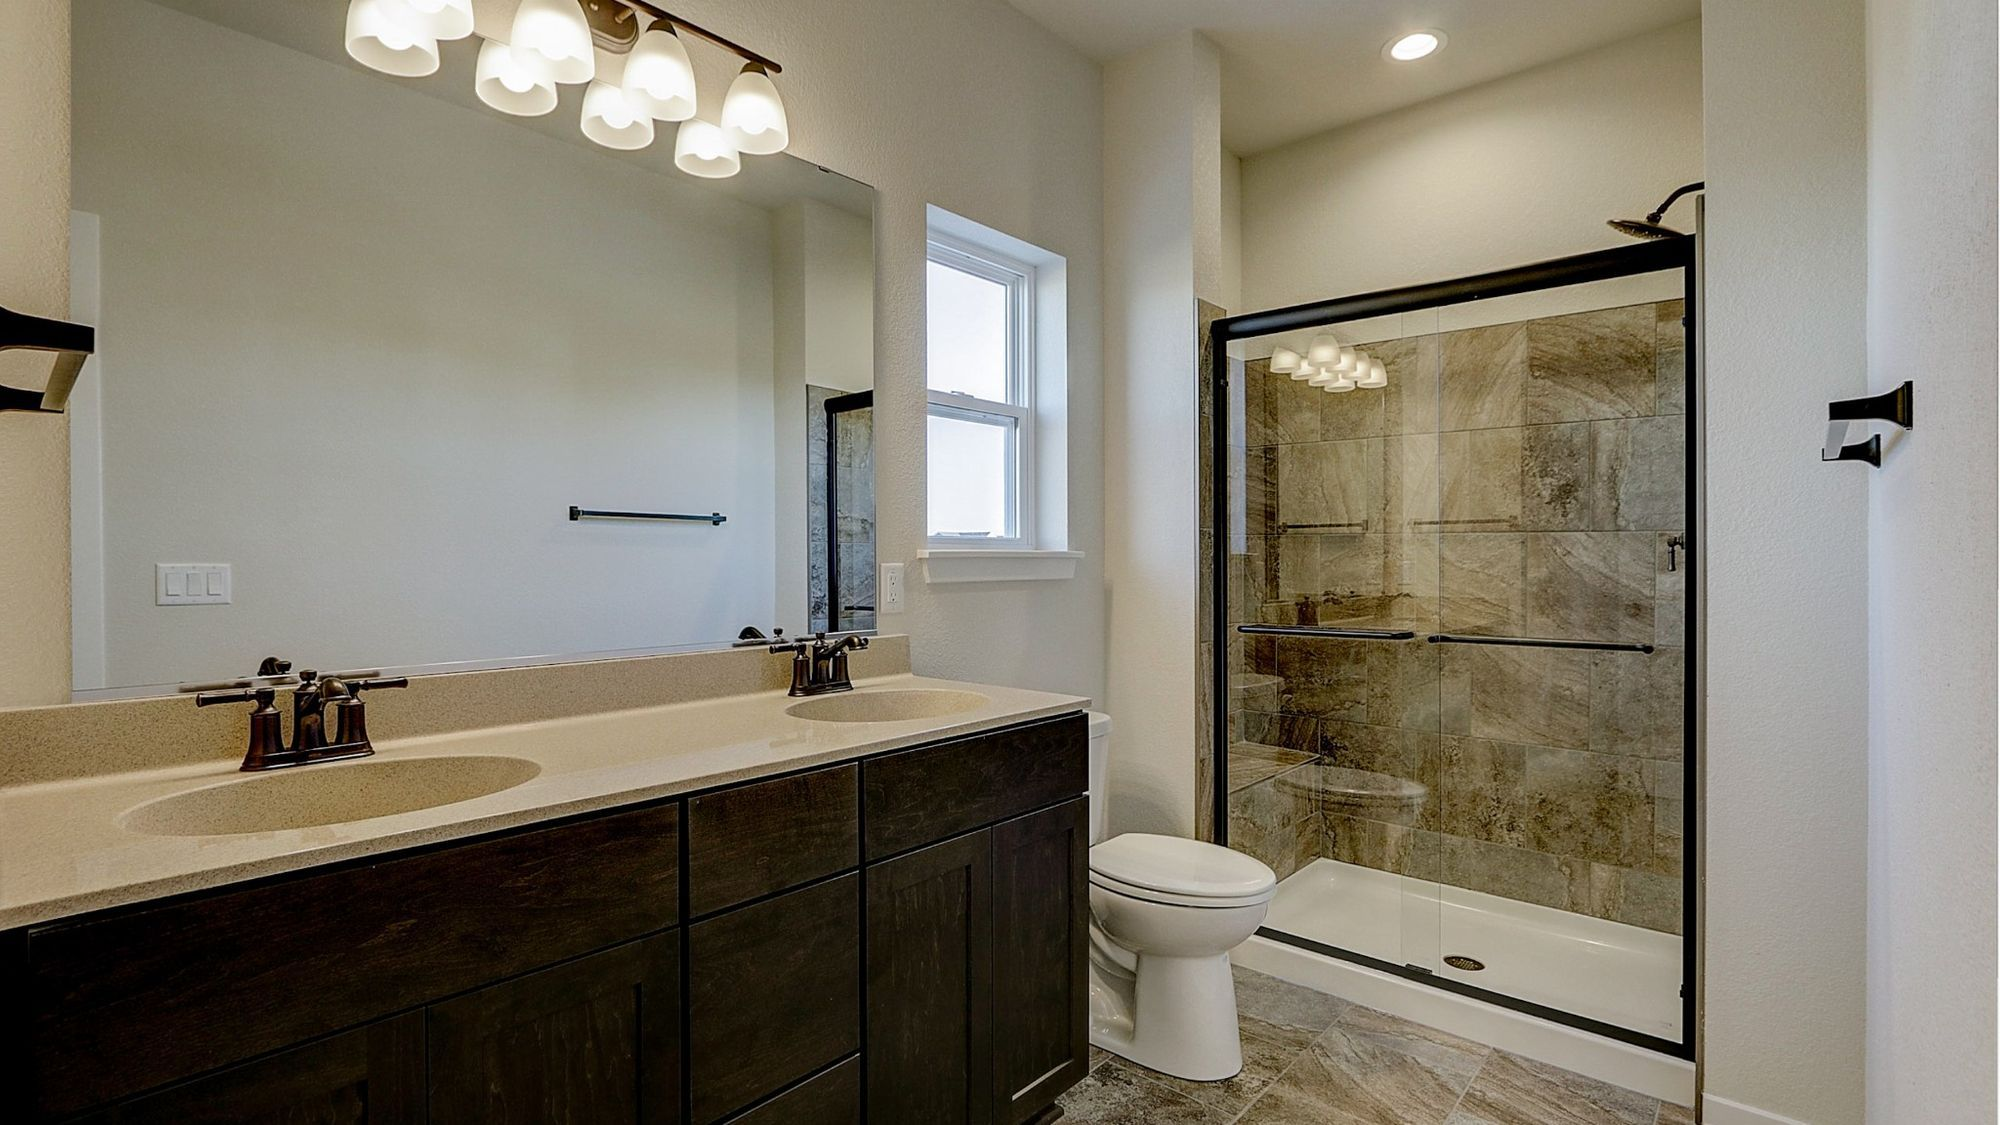 Bathroom featured in The Drake By Harbor Homes in Washington-Fond du Lac, WI